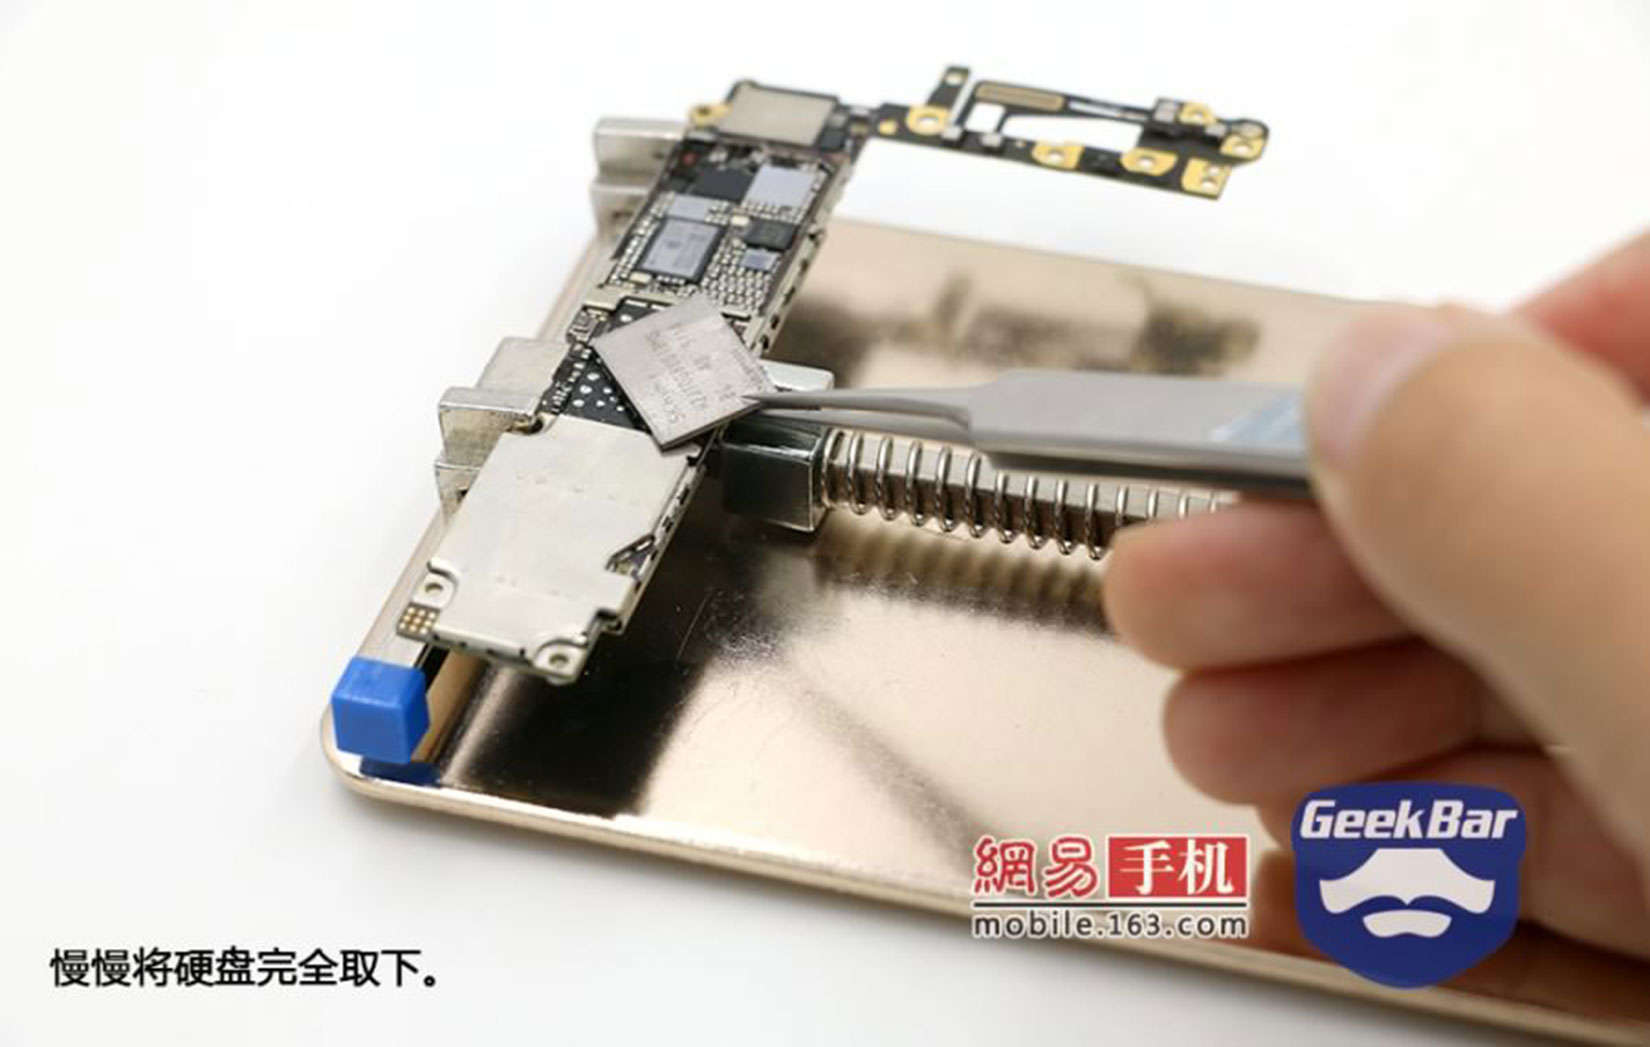 This image shows how one repair service in China replaces the memory chip in an iPhone 6.